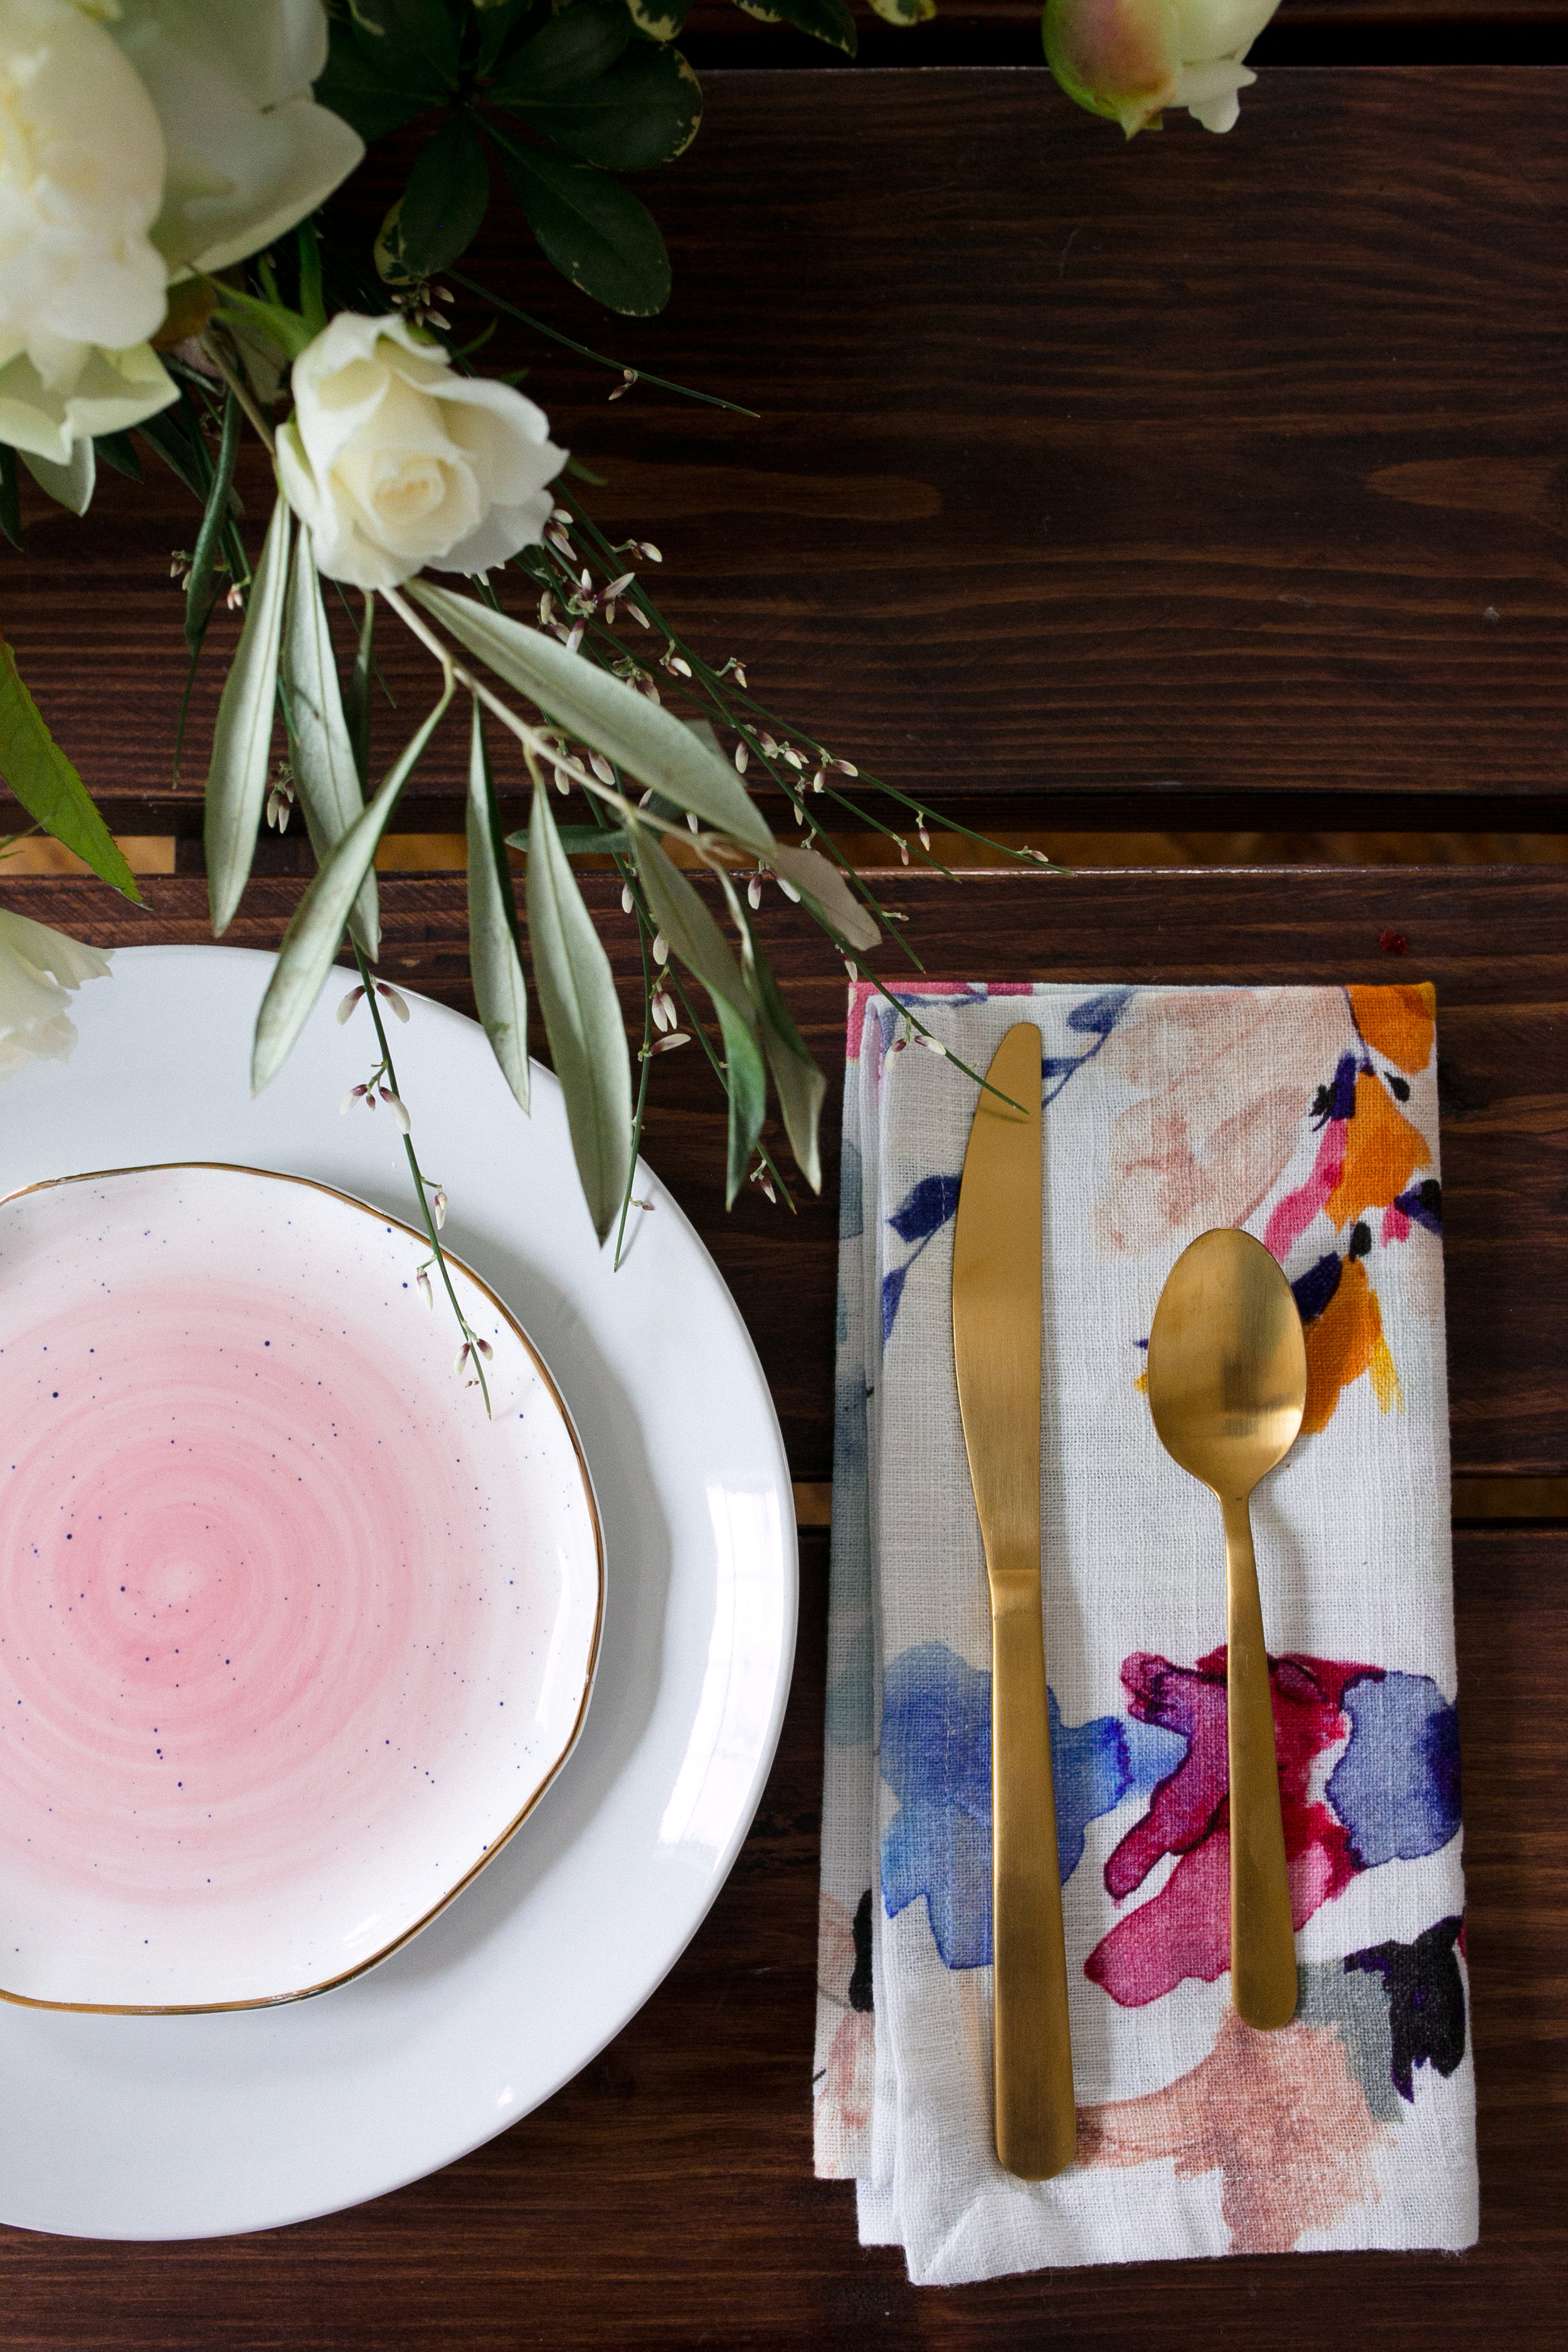 Tablesetting from Galentine's Day from Unusually Lovely